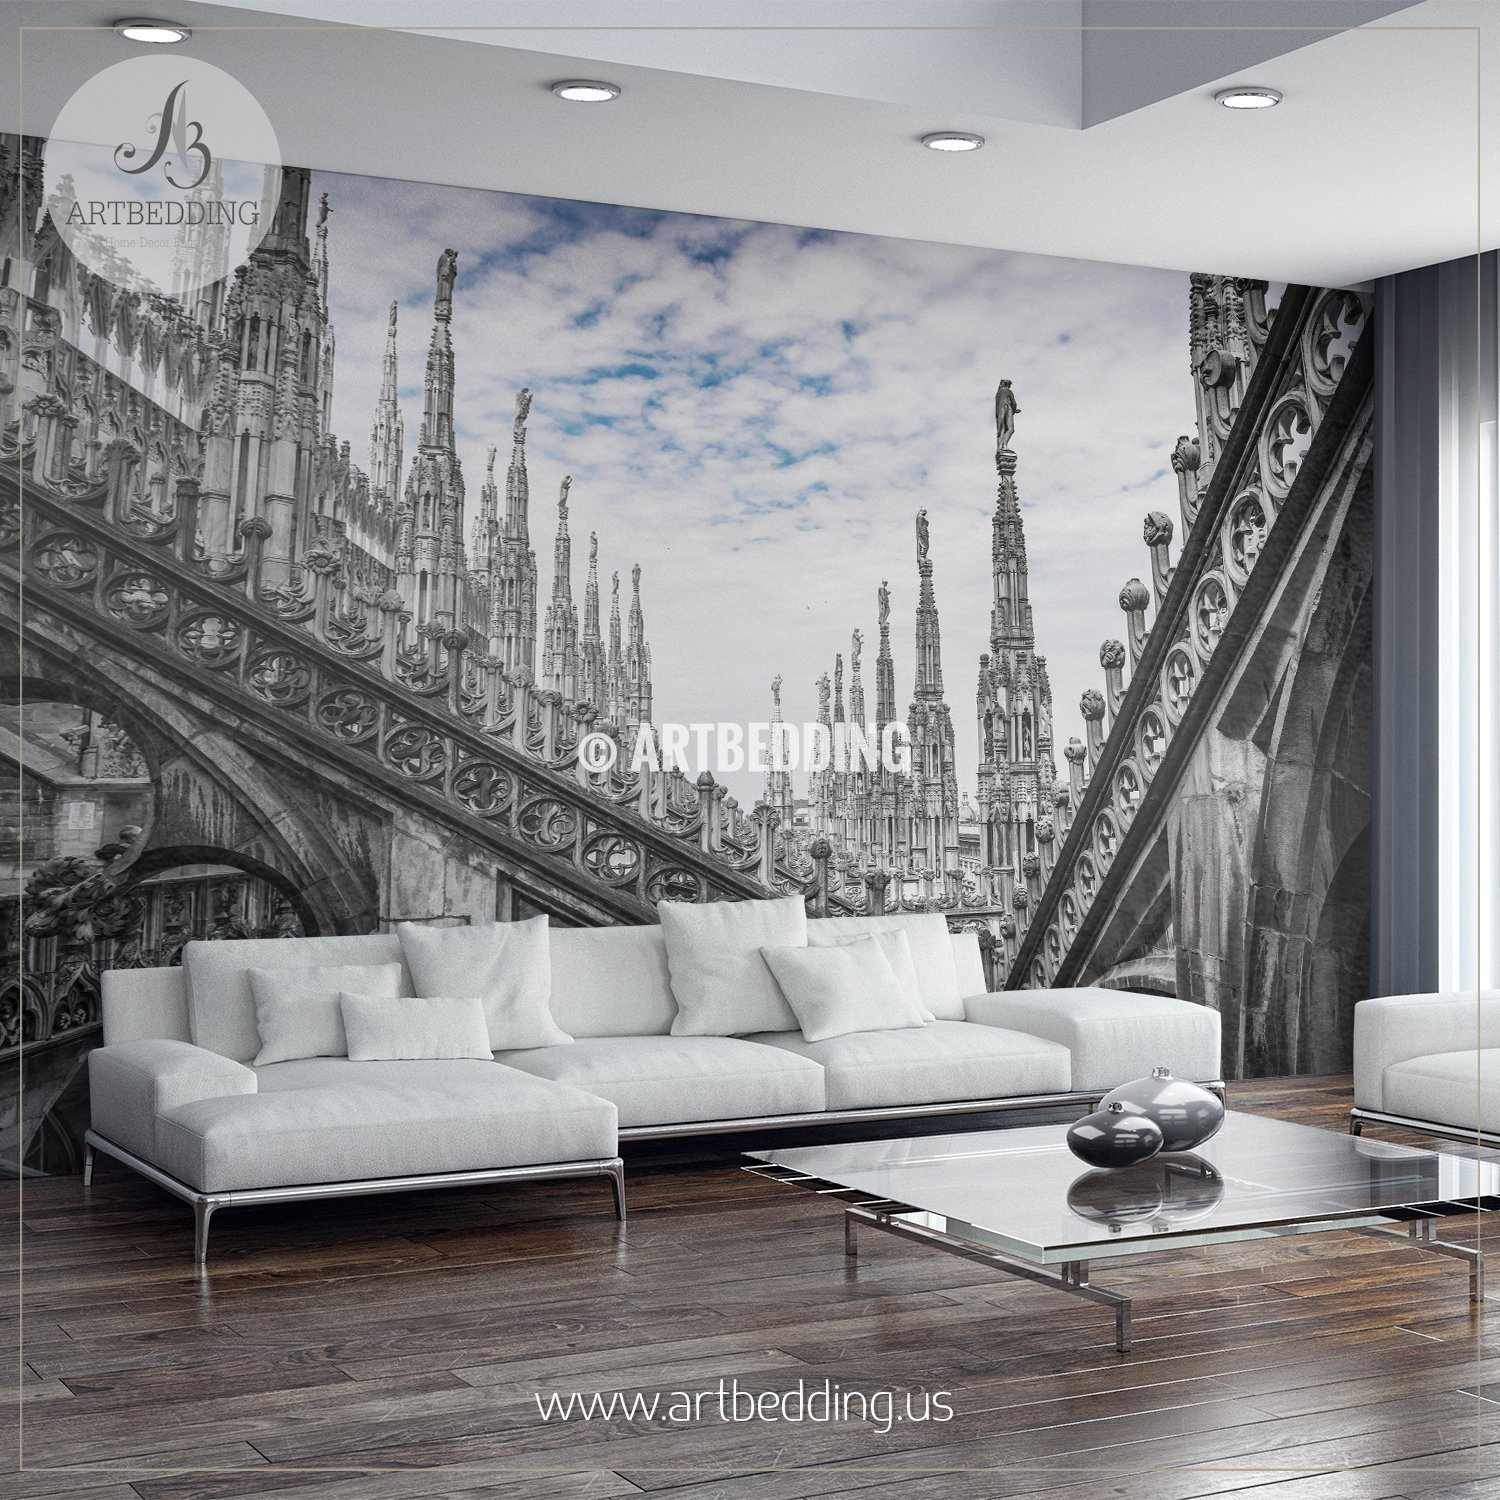 Cologne Cathedral At Dusk Evening Cityscape Wallpaper: Self-adhesive Vinyl